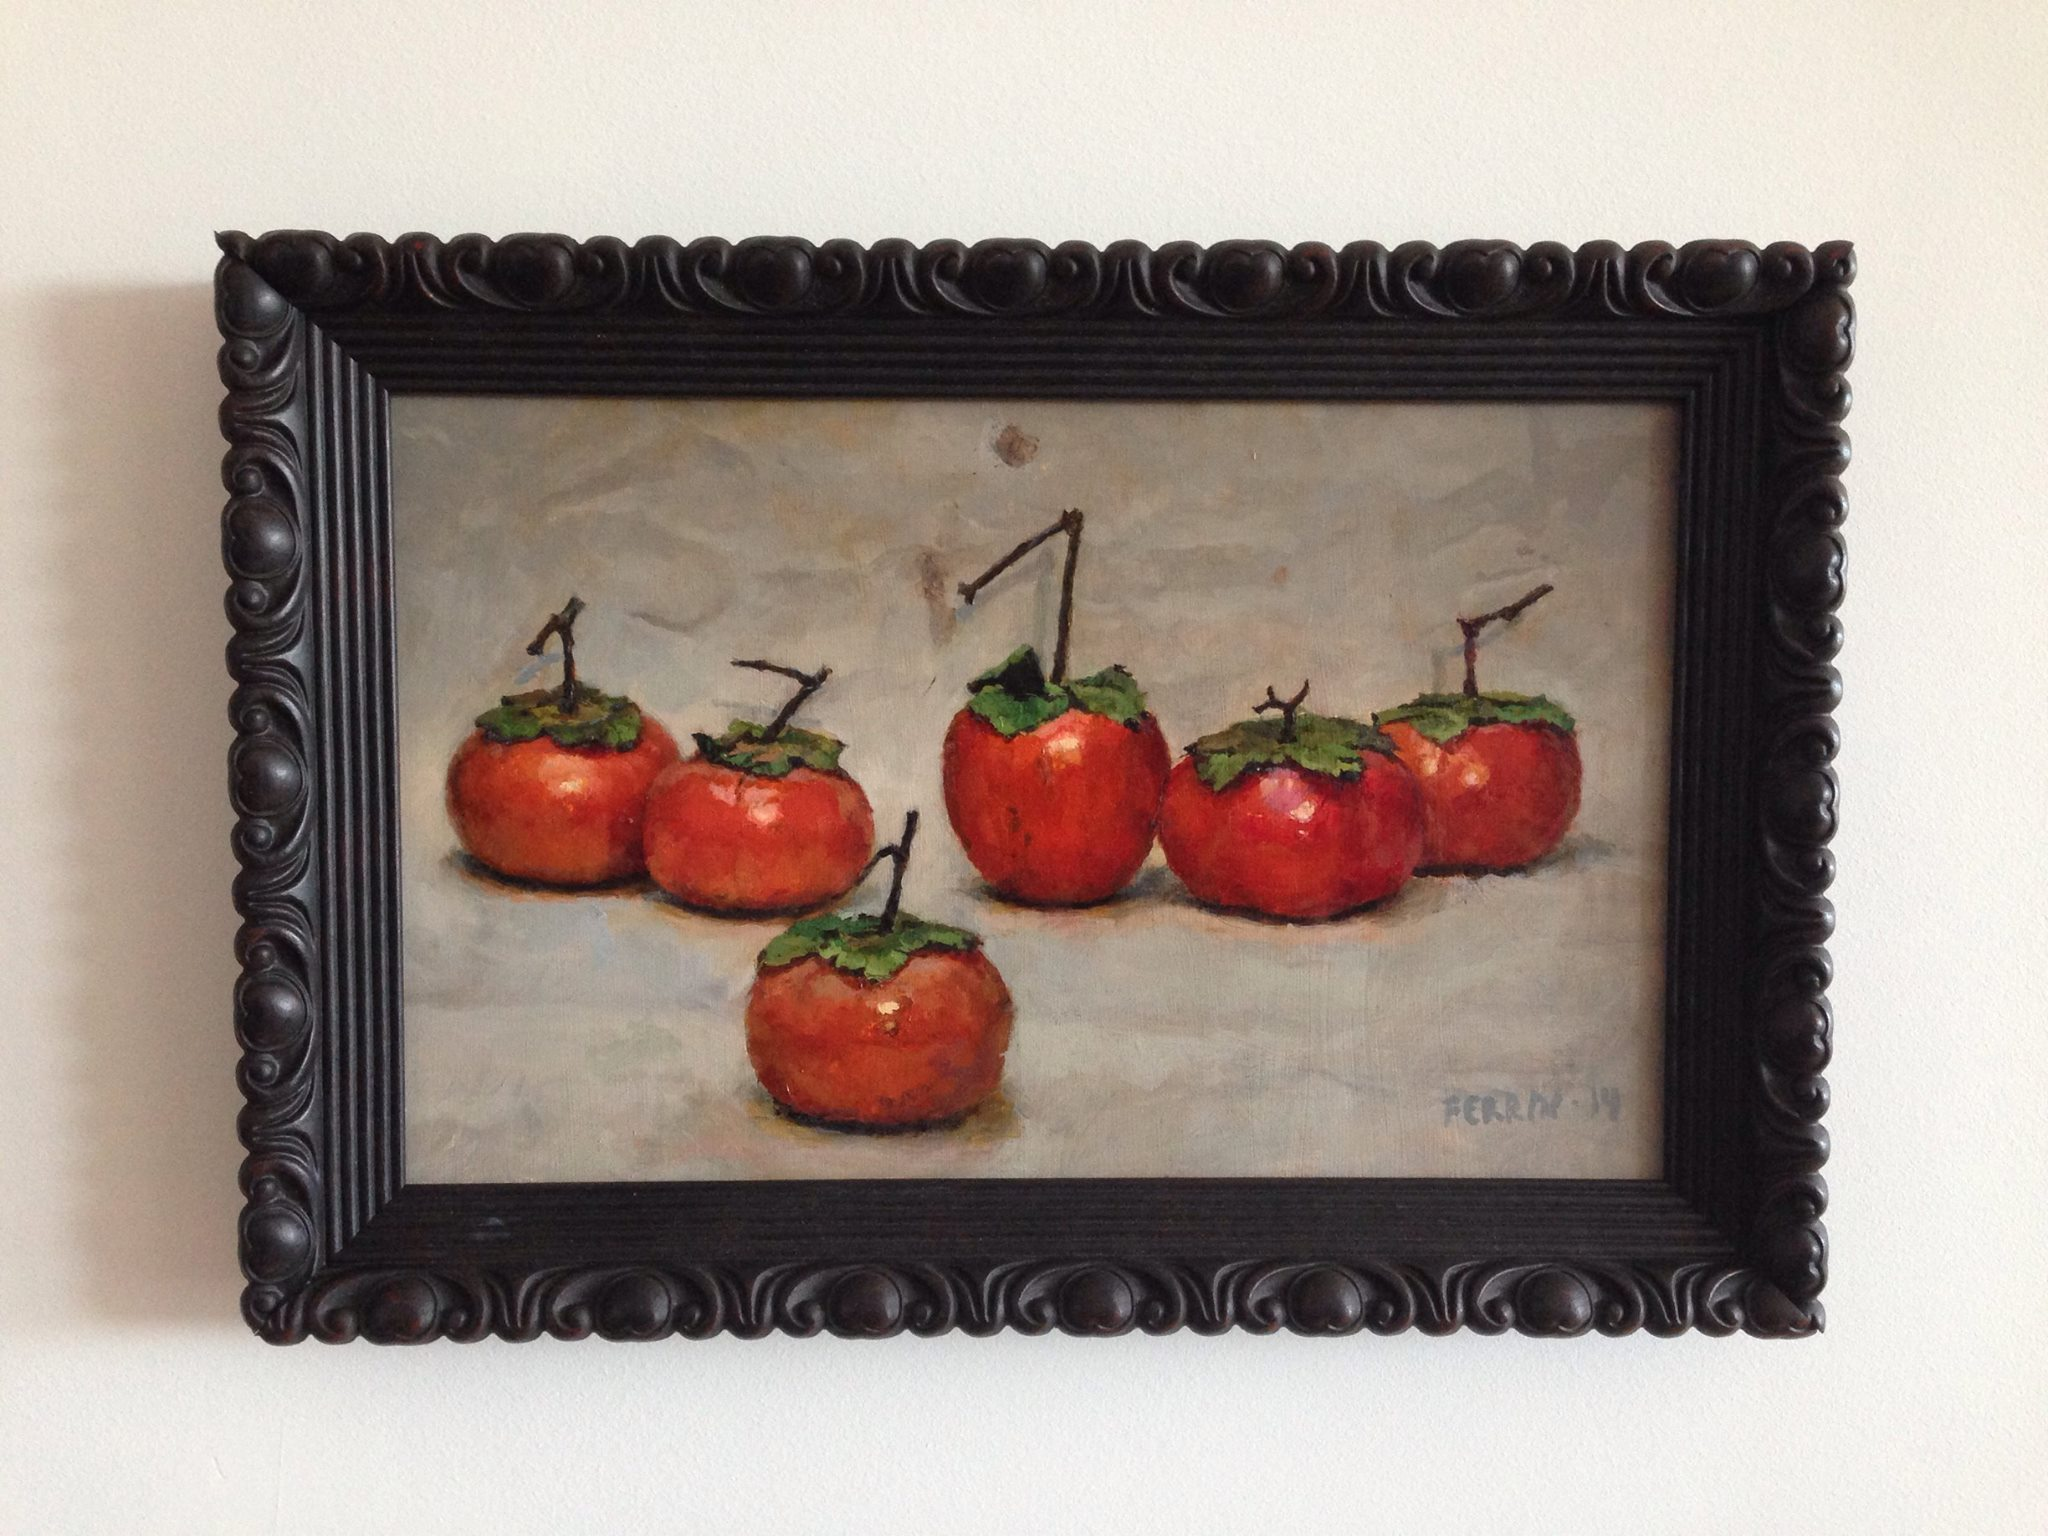 Painting of Tomatoes